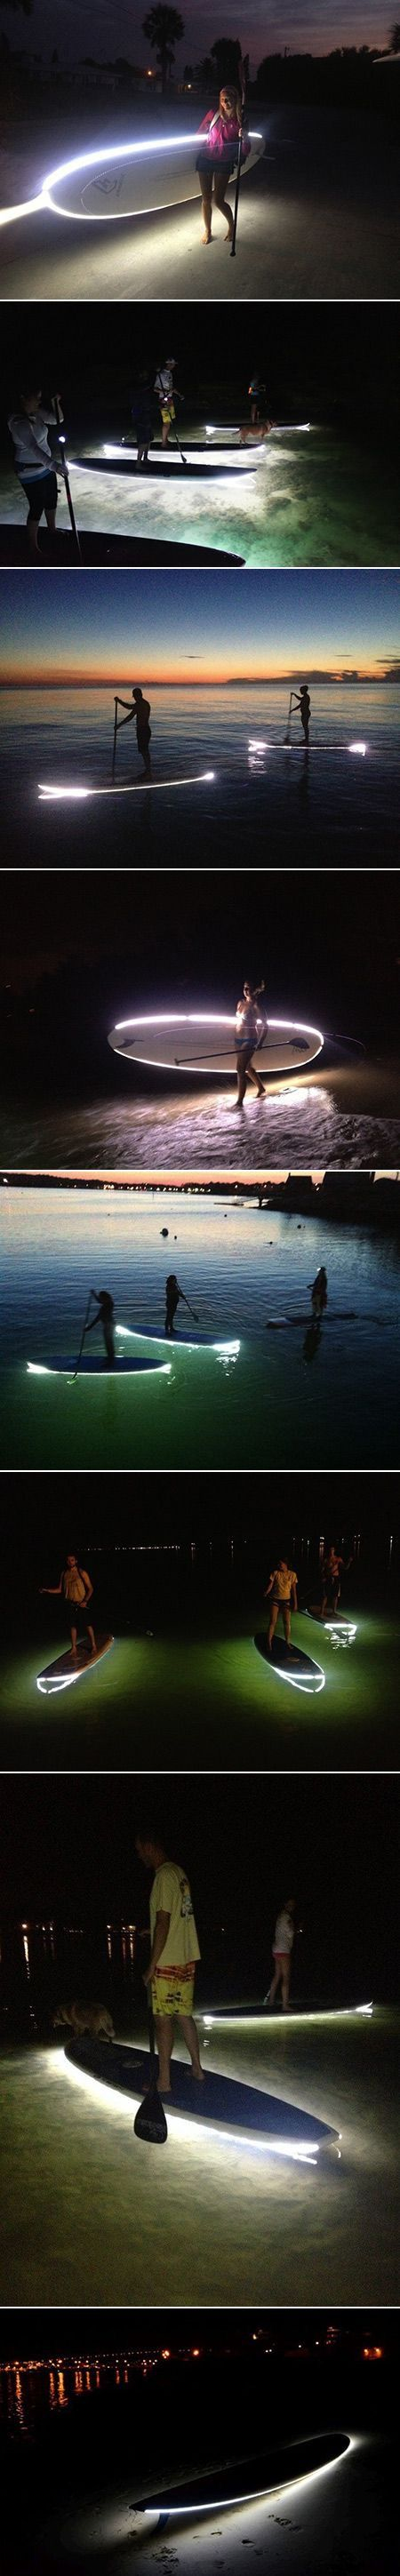 Light up paddle board?!